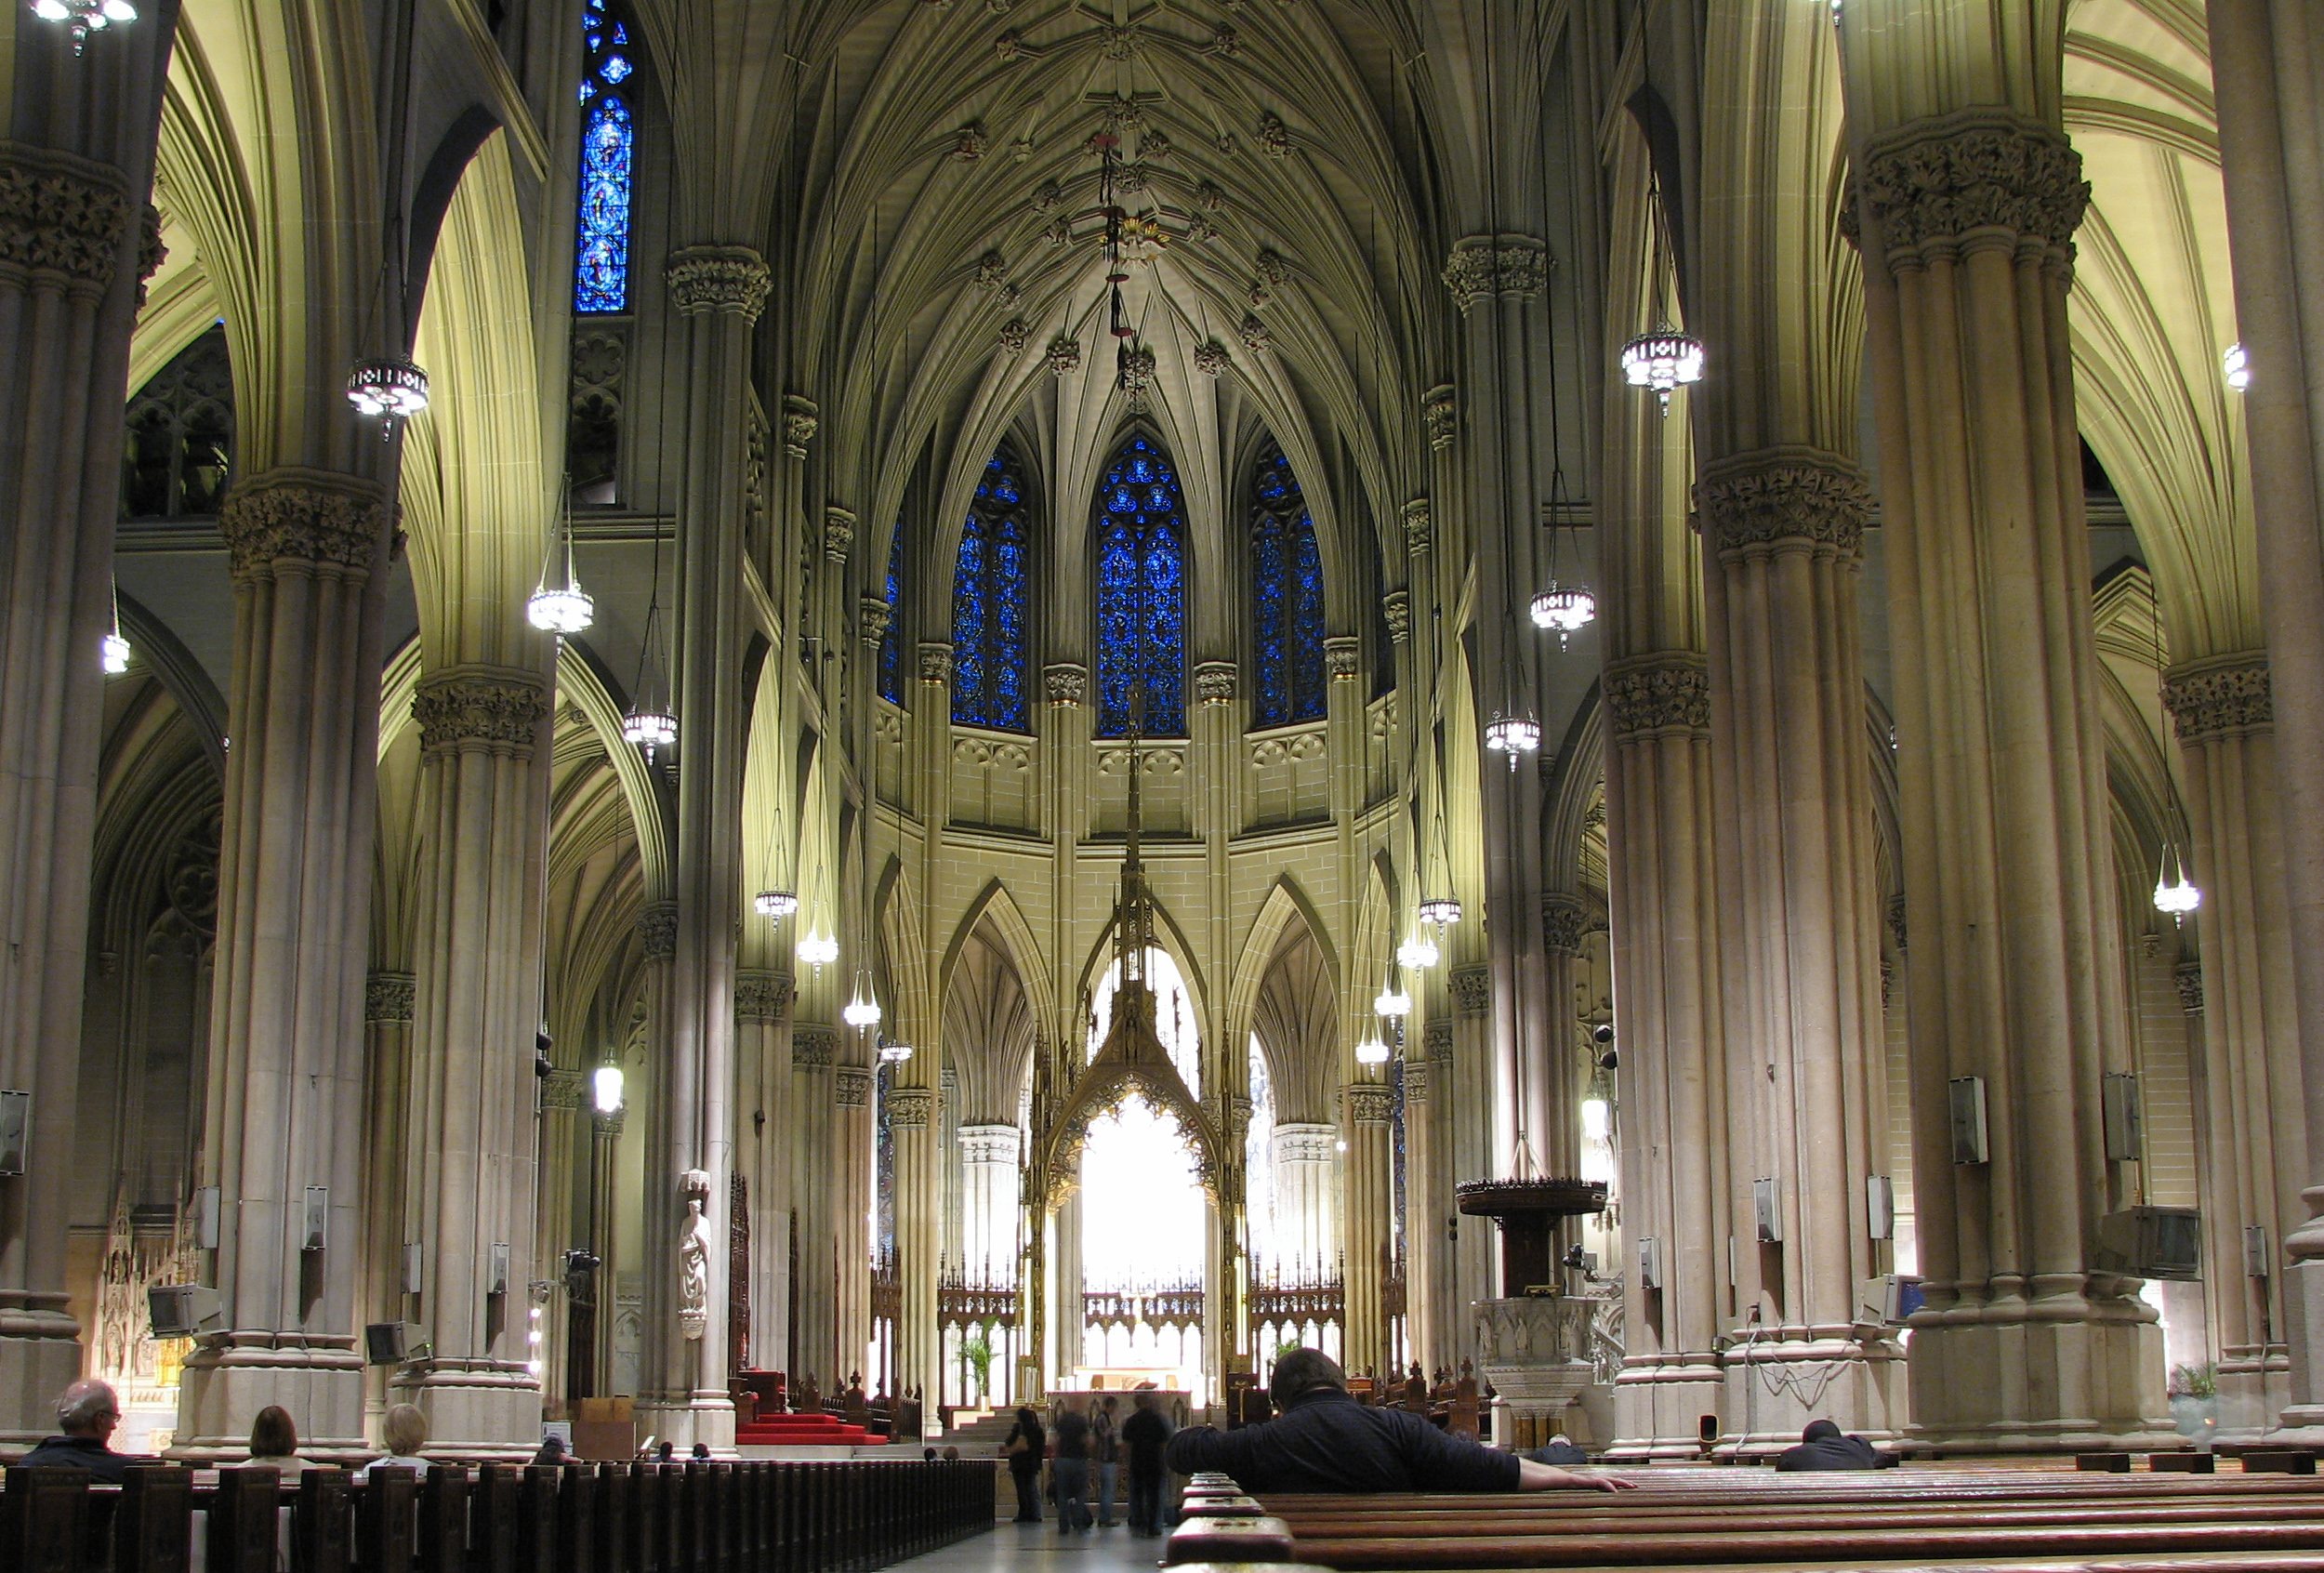 File:St Patrick's cathedral NY.jpg - Wikimedia Commons